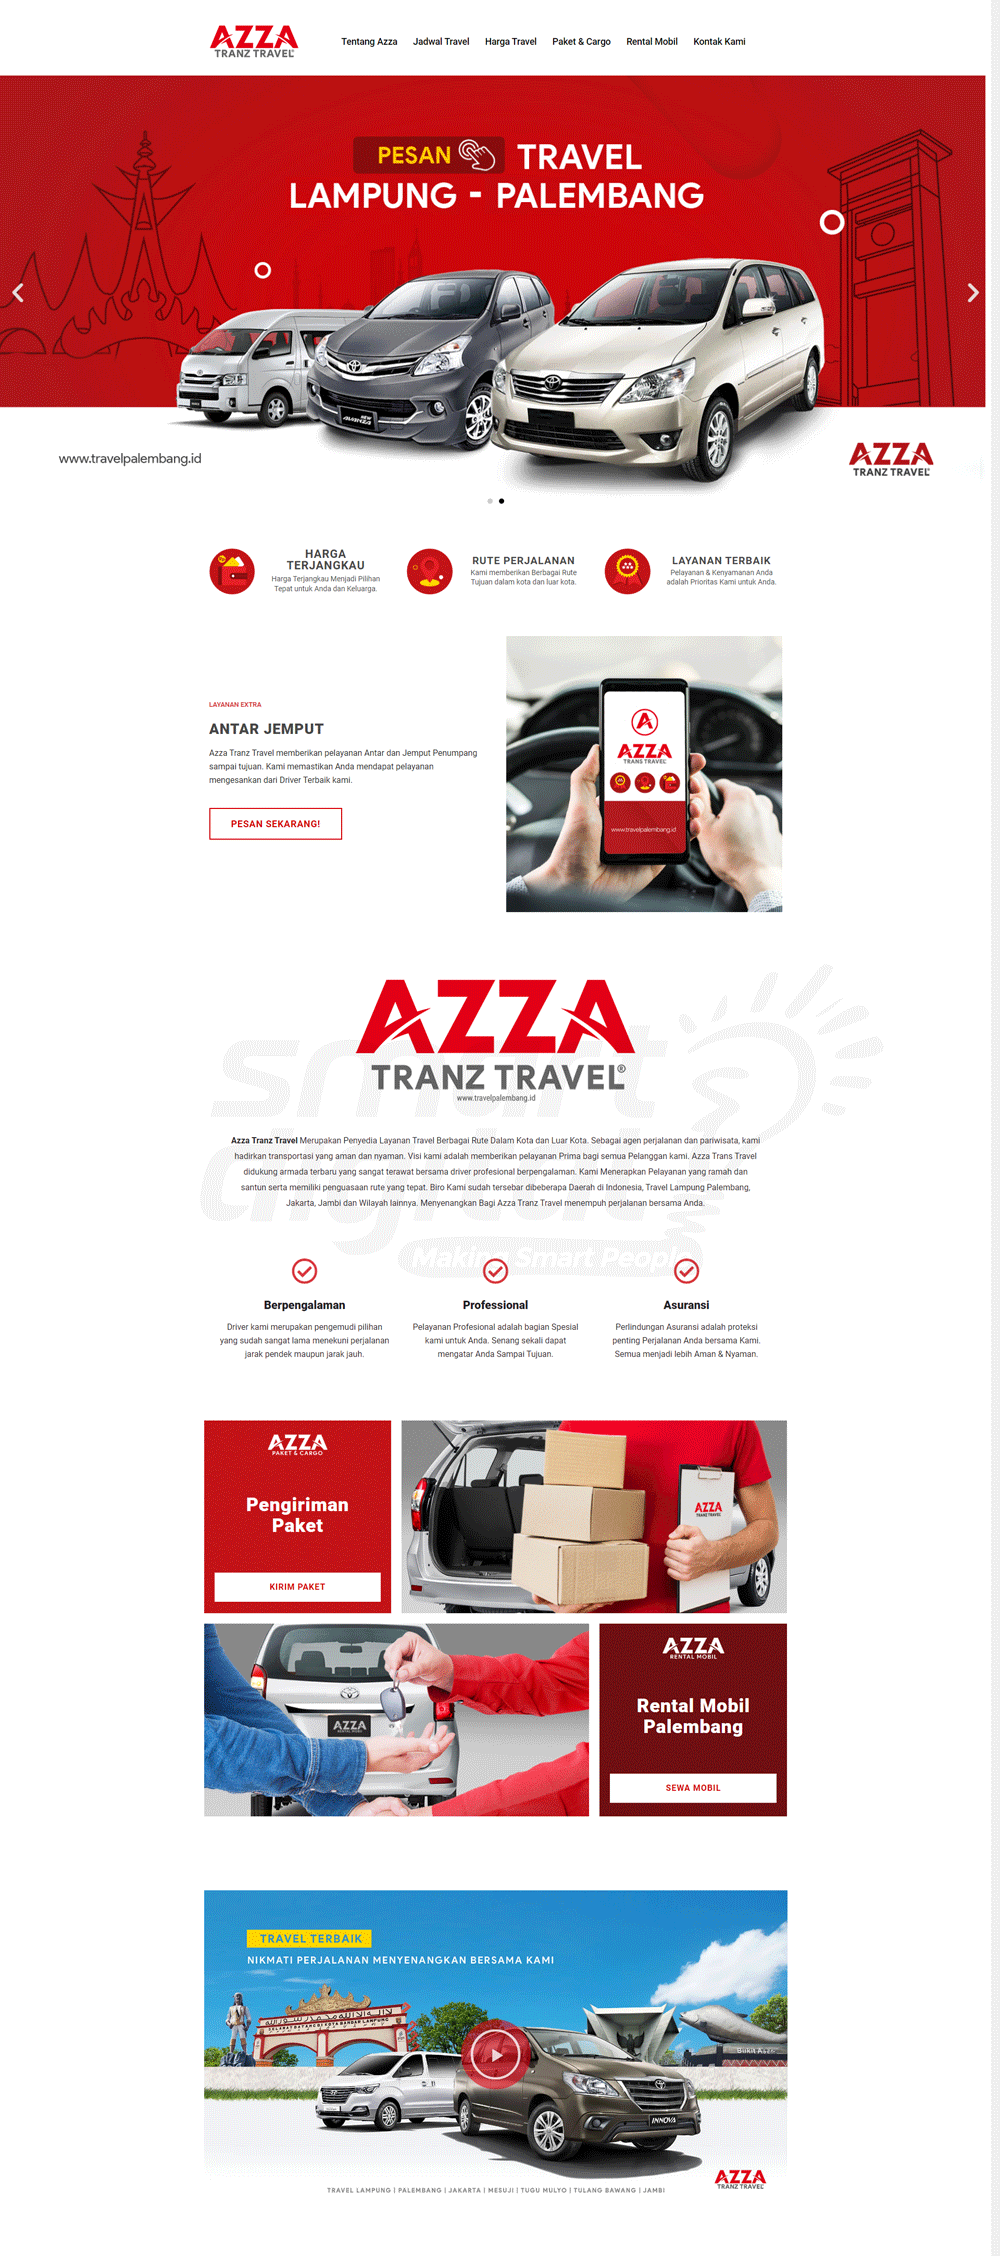 Jasa-Pembuatan-Website-Palembang-SEO-Aplikasi-Template-Website-Layout-Travel-Contoh-Download